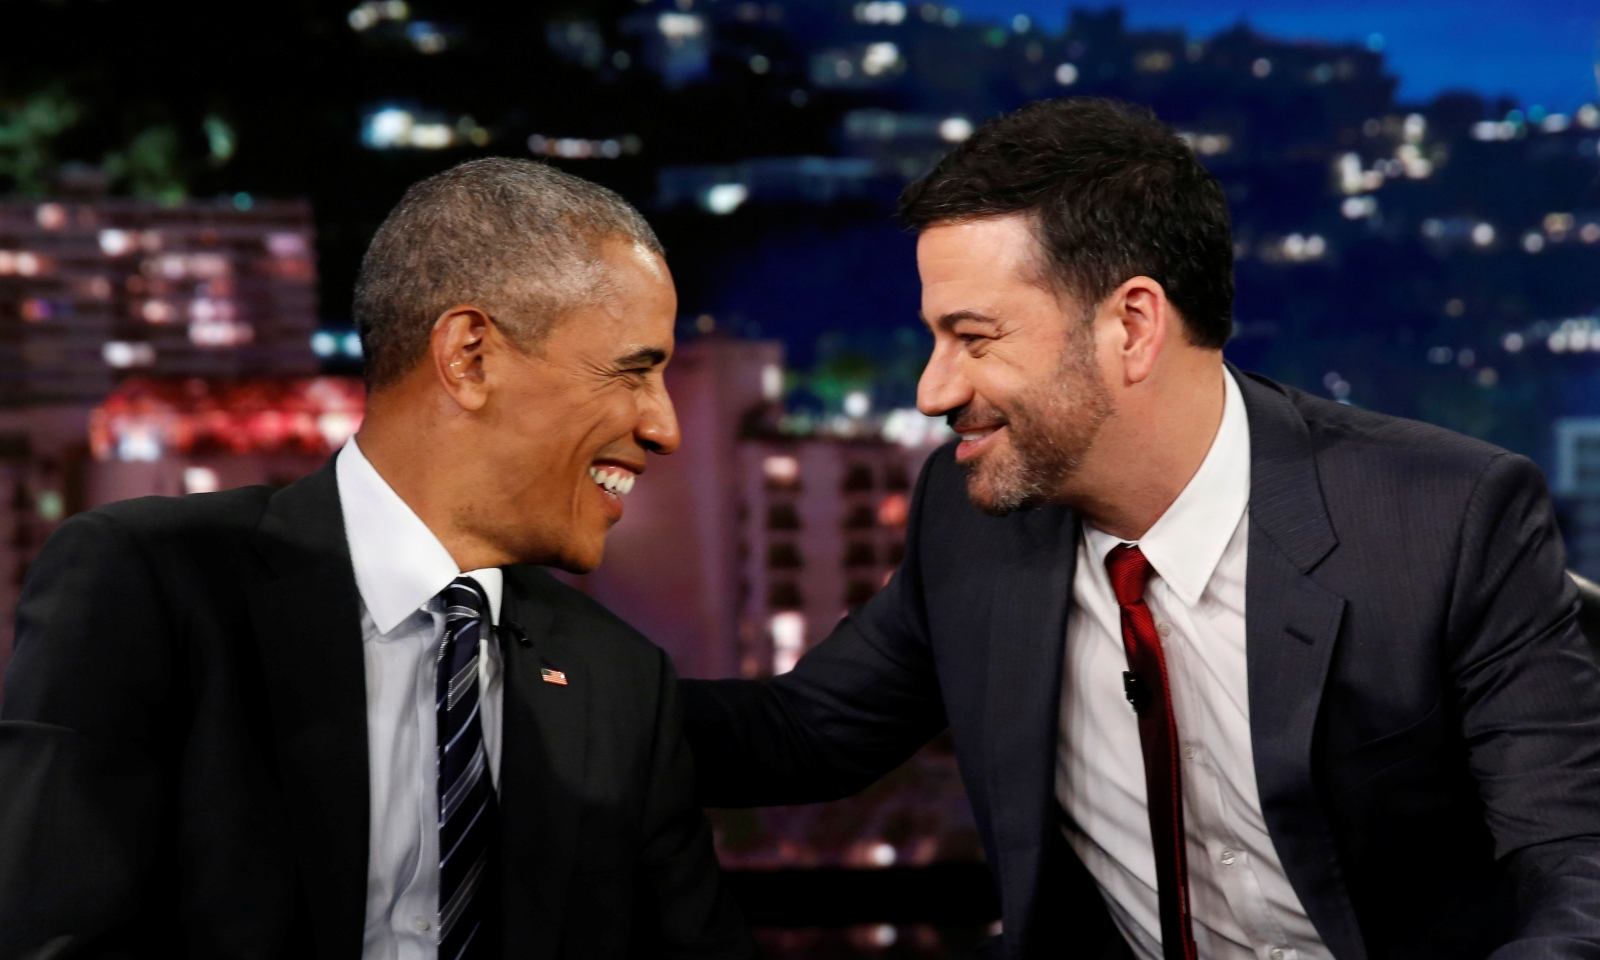 Jimmy Kimmel and Barack Obama